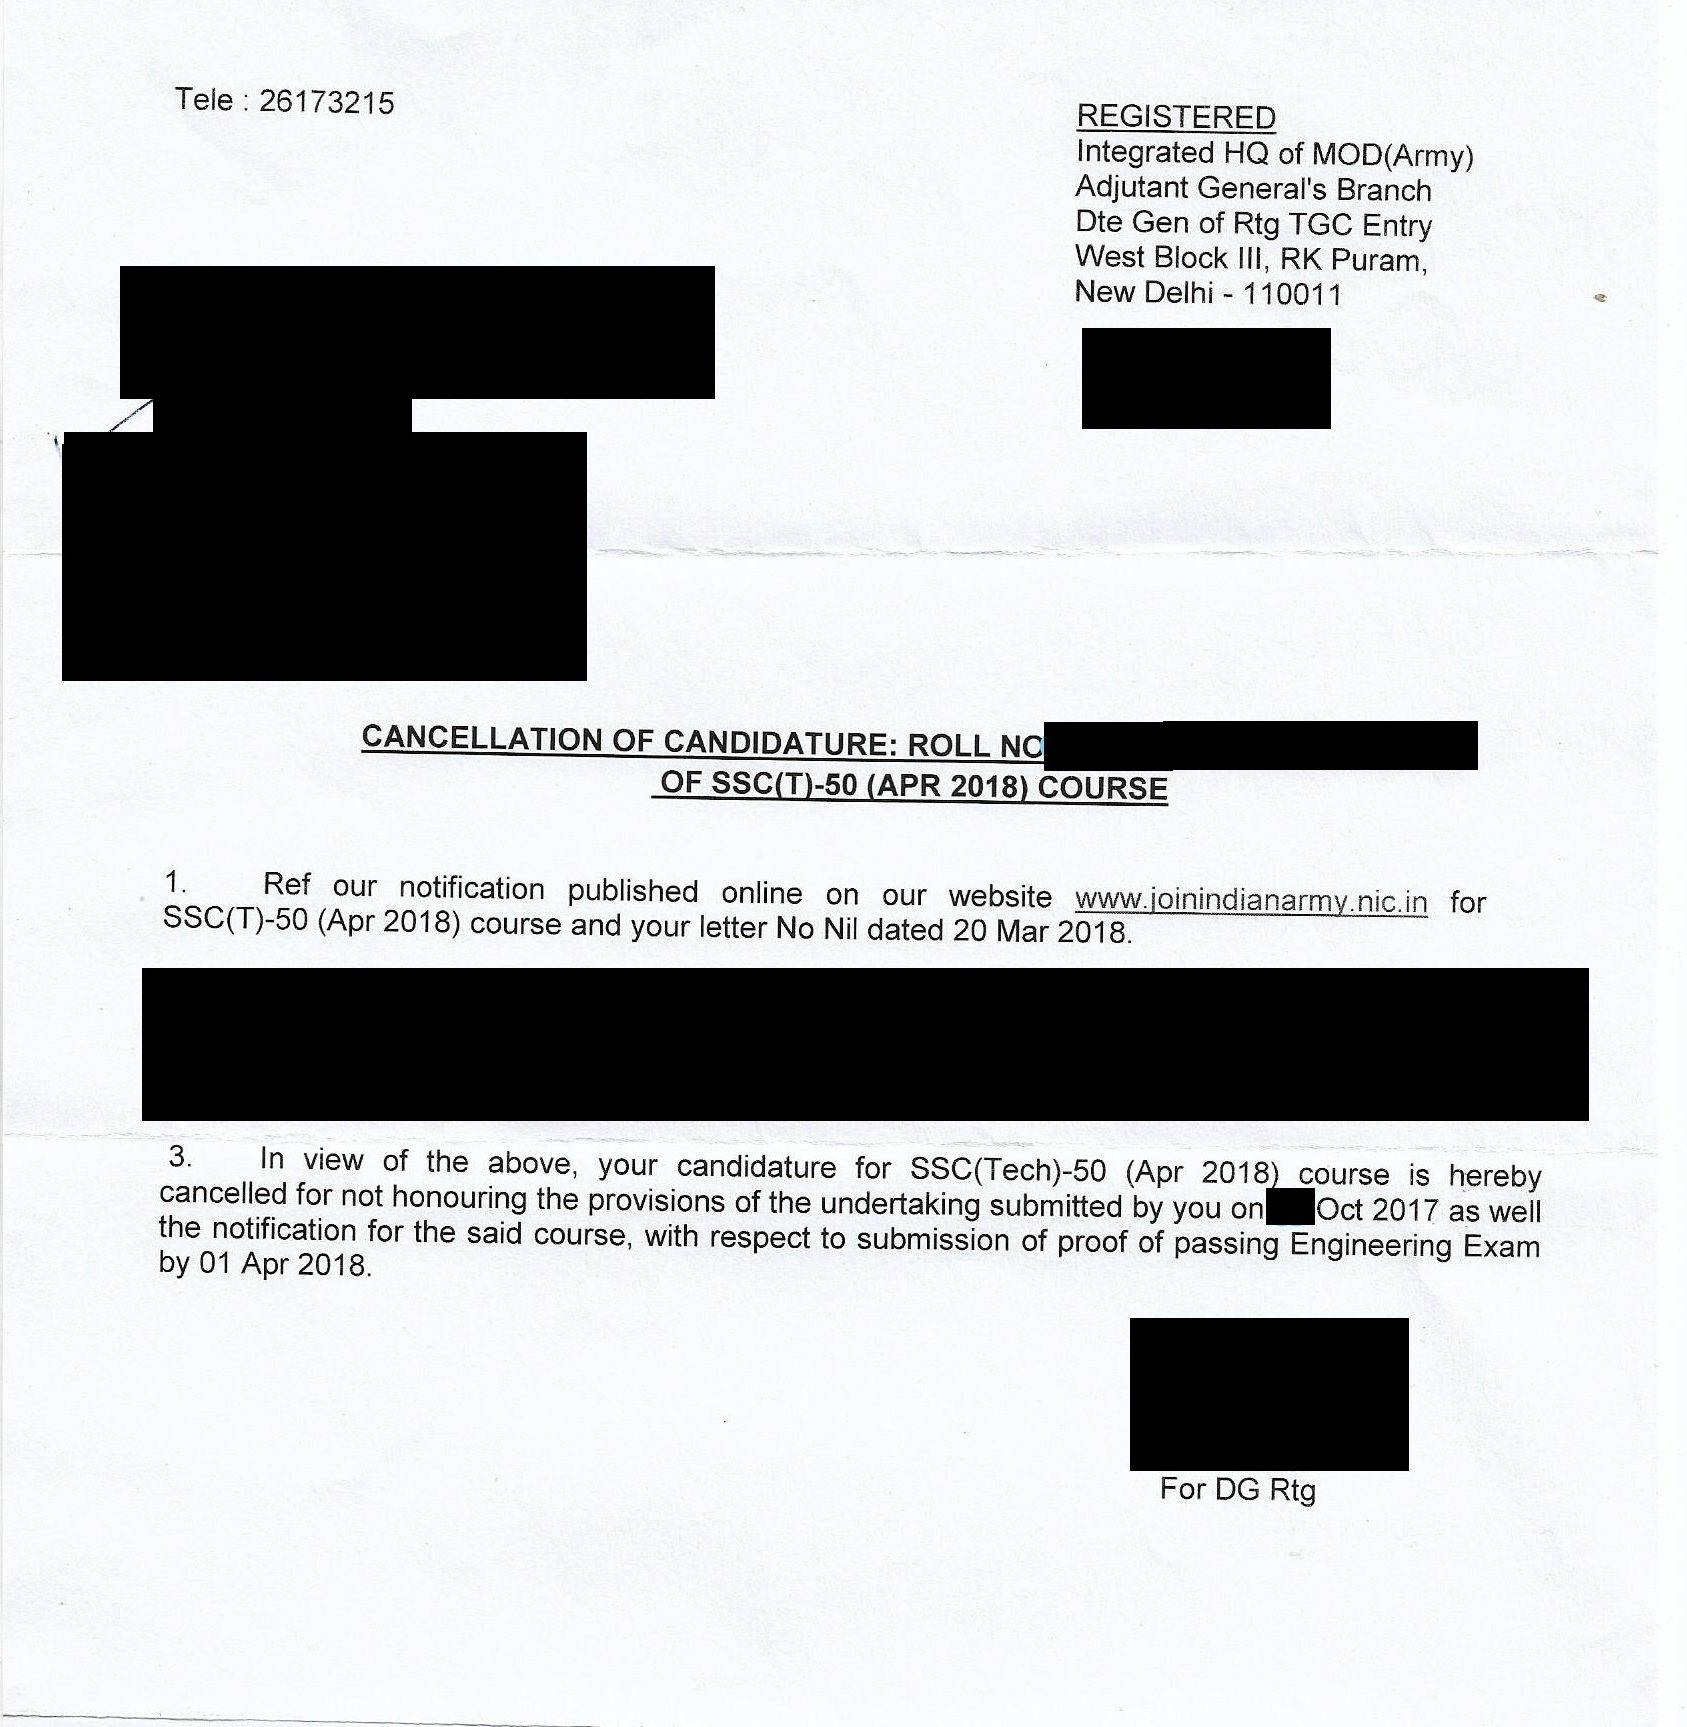 Candidature cancellation letter